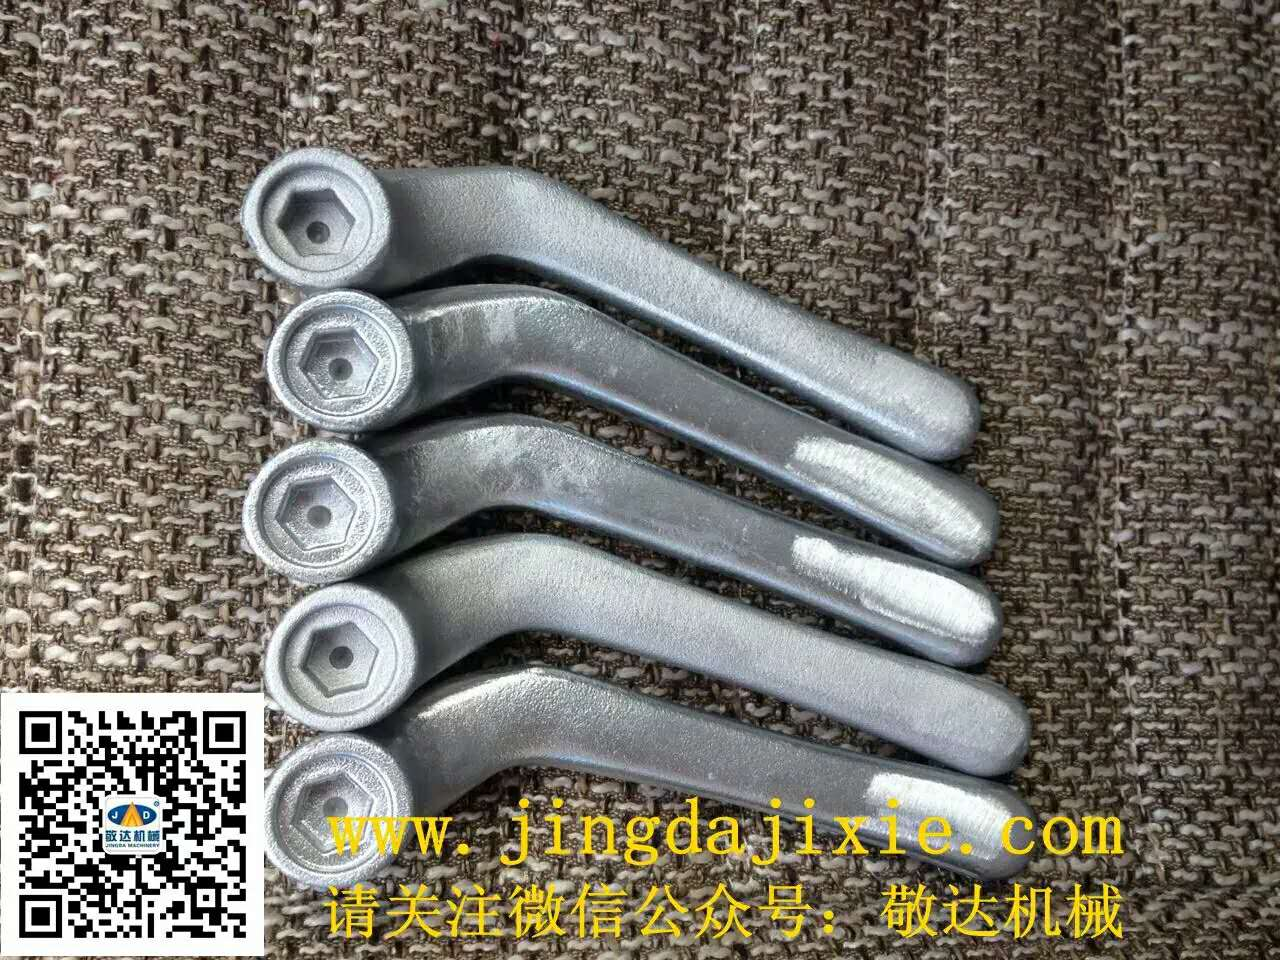 Jingda hot selling aluminium casting products with stable and reliable function for indoor/outdoor-2